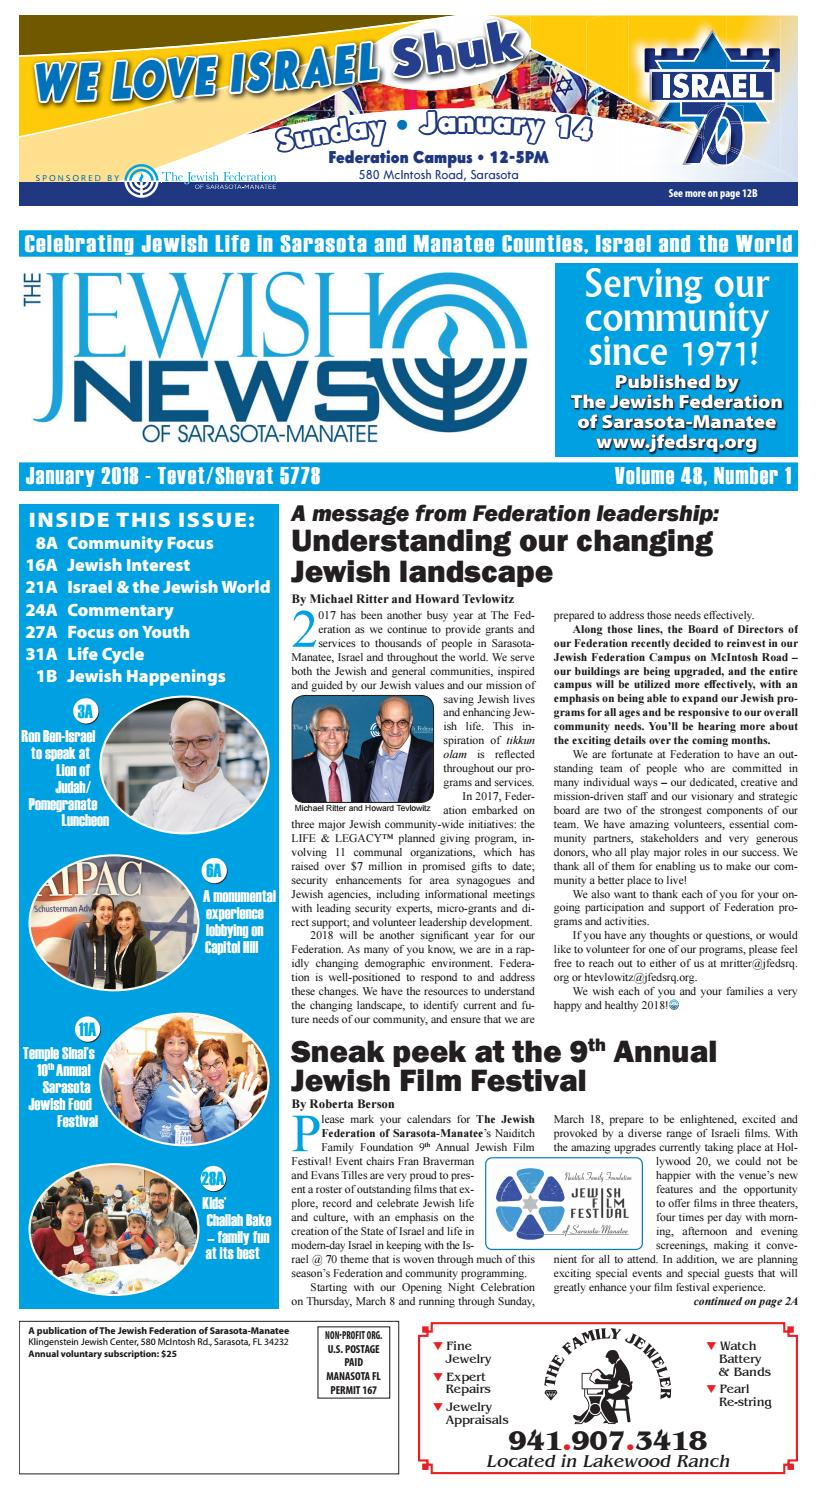 The Jewish News - January 2018 by The Jewish Federation of Sarasota-Manatee  - issuu